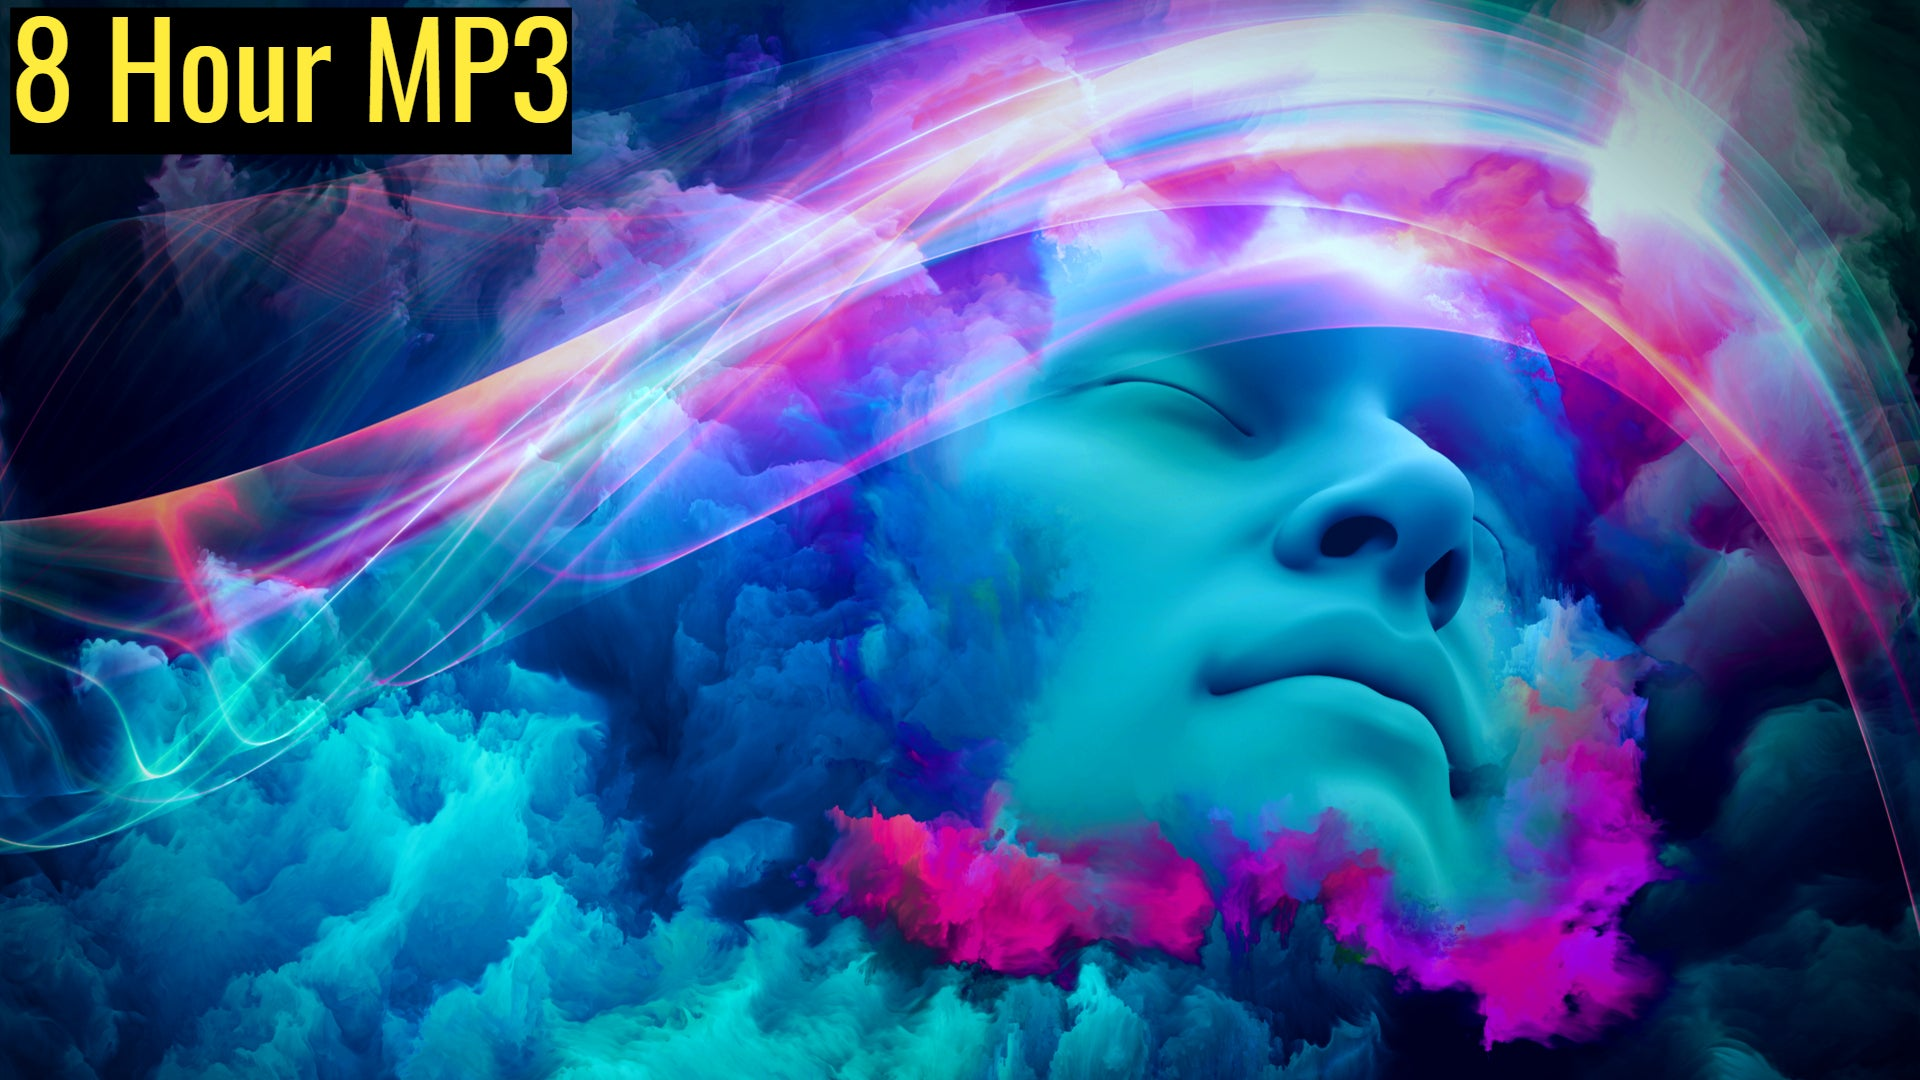 8D Happiness Frequency Meditation Music for Serotonin Release | Overcome Depression | Stress Relief | Clear Past Negative Hurt - Full 8 Hour Track